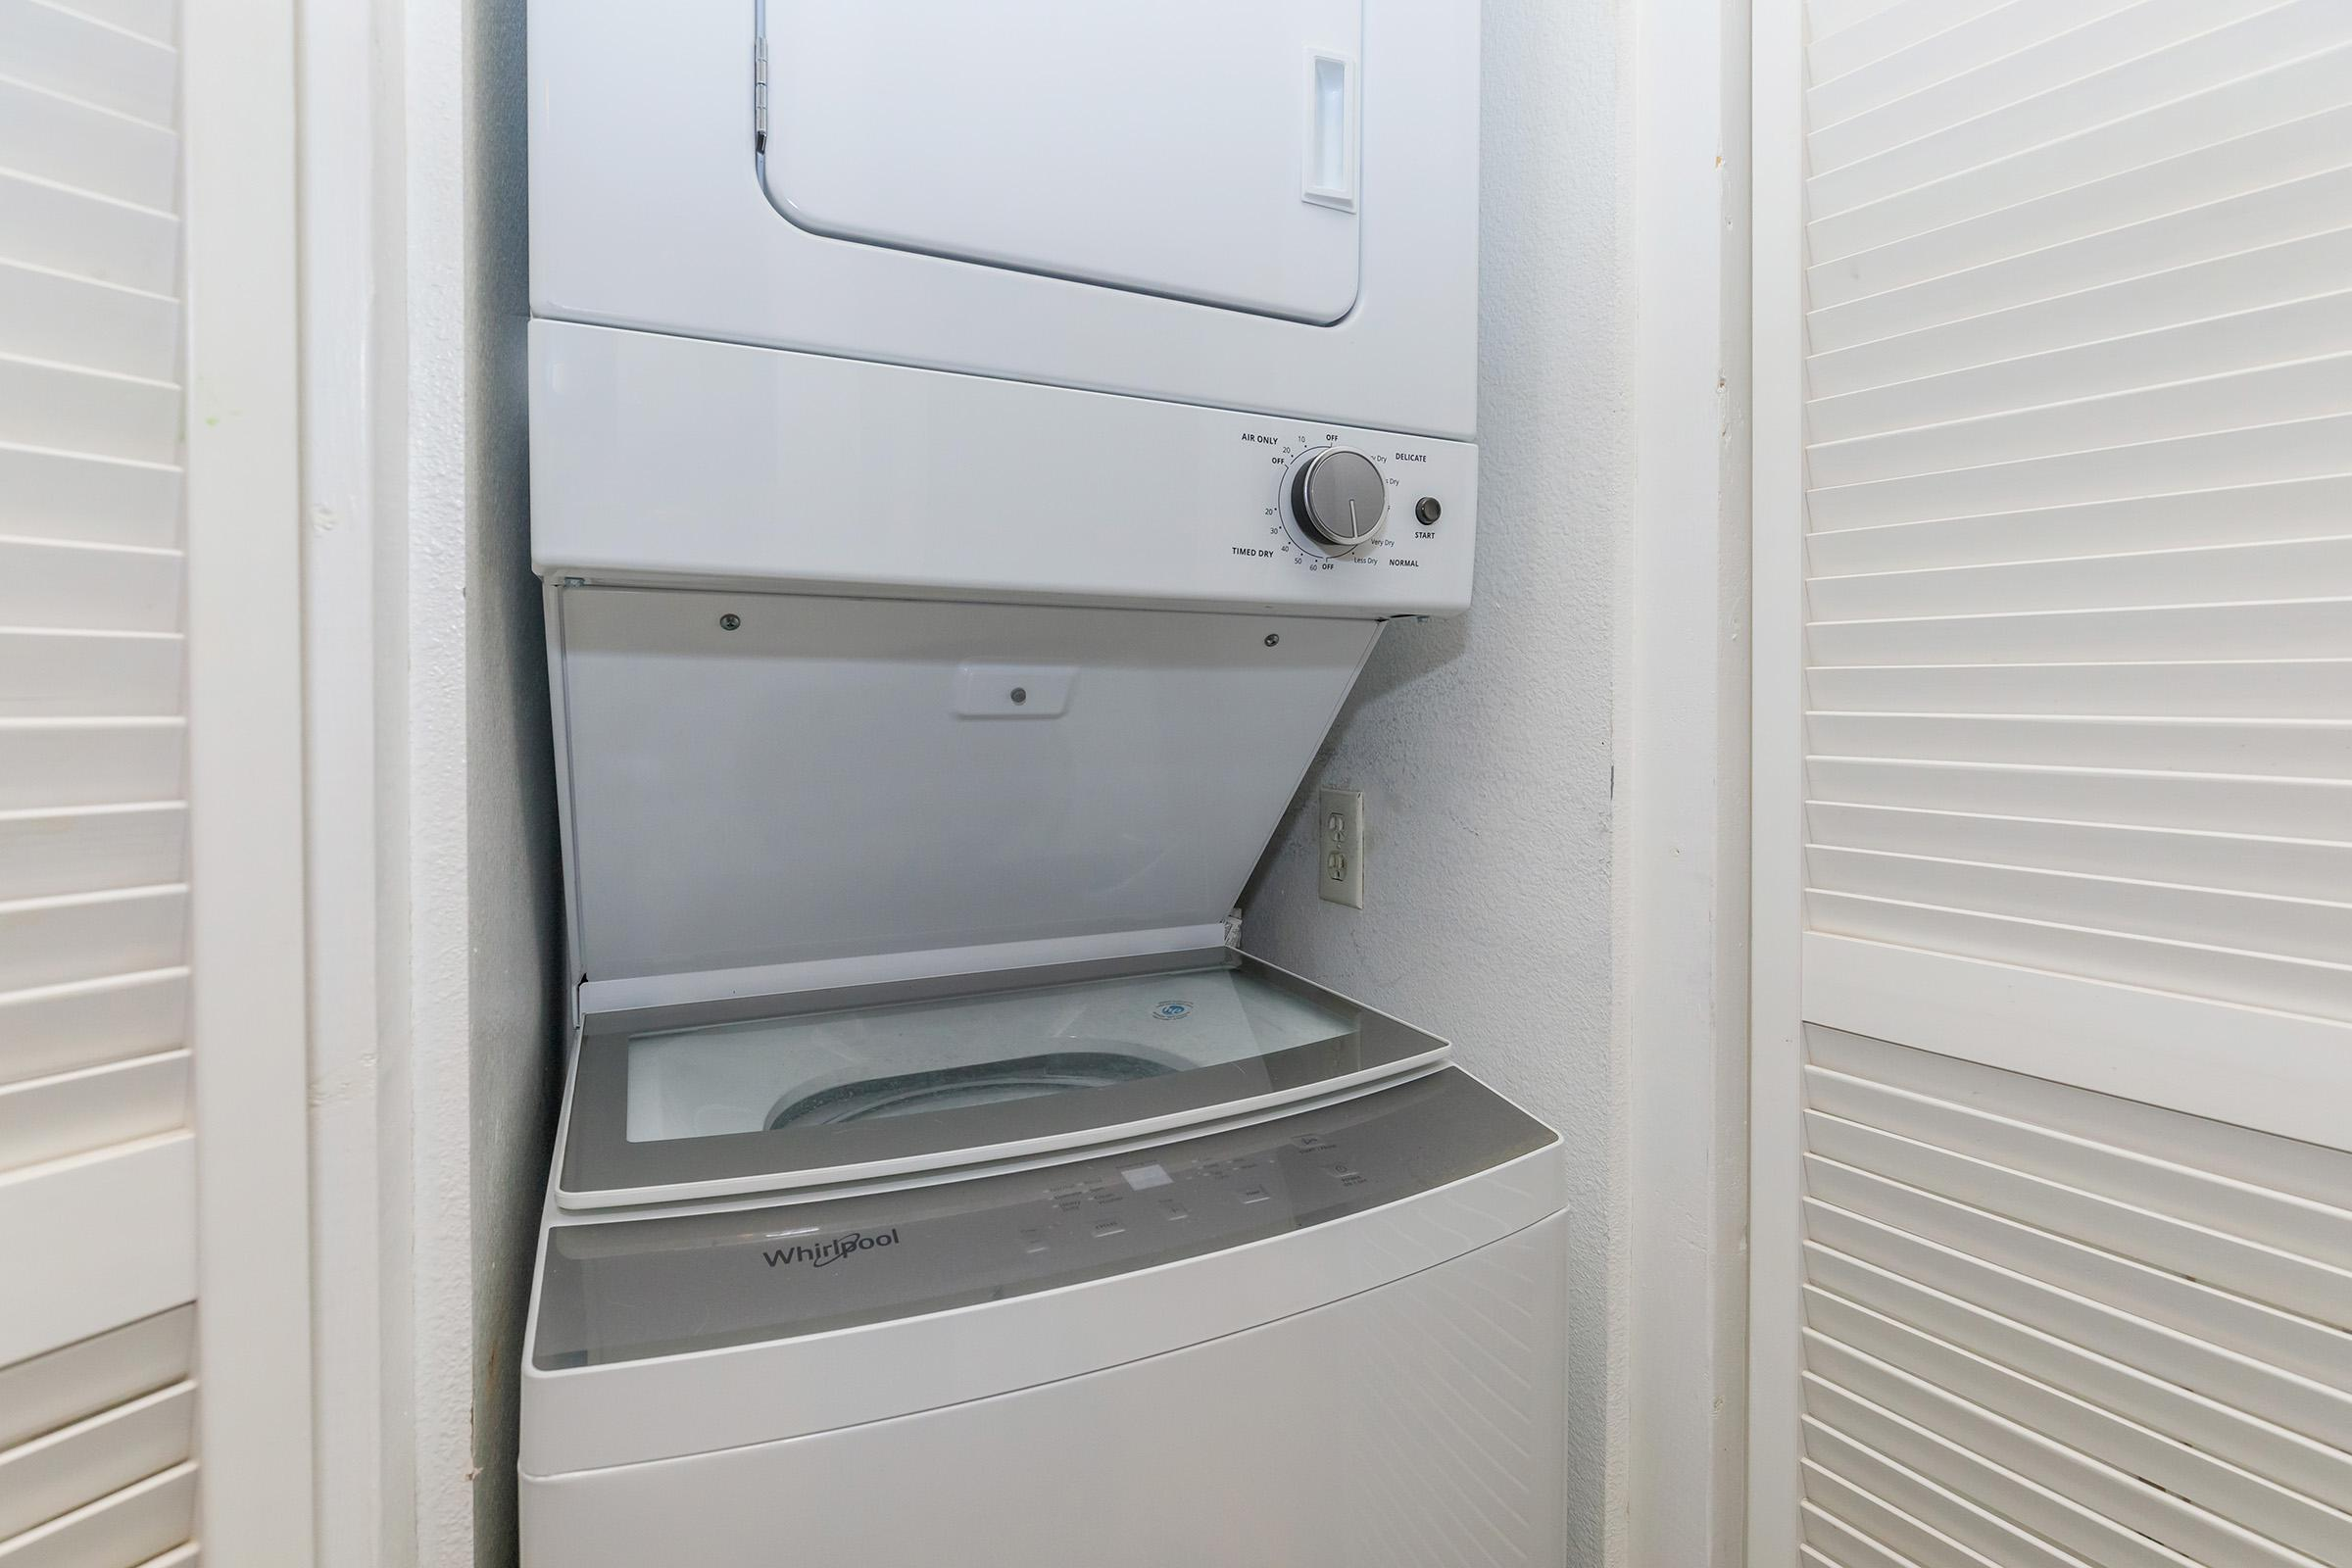 a white stove top oven sitting next to a door